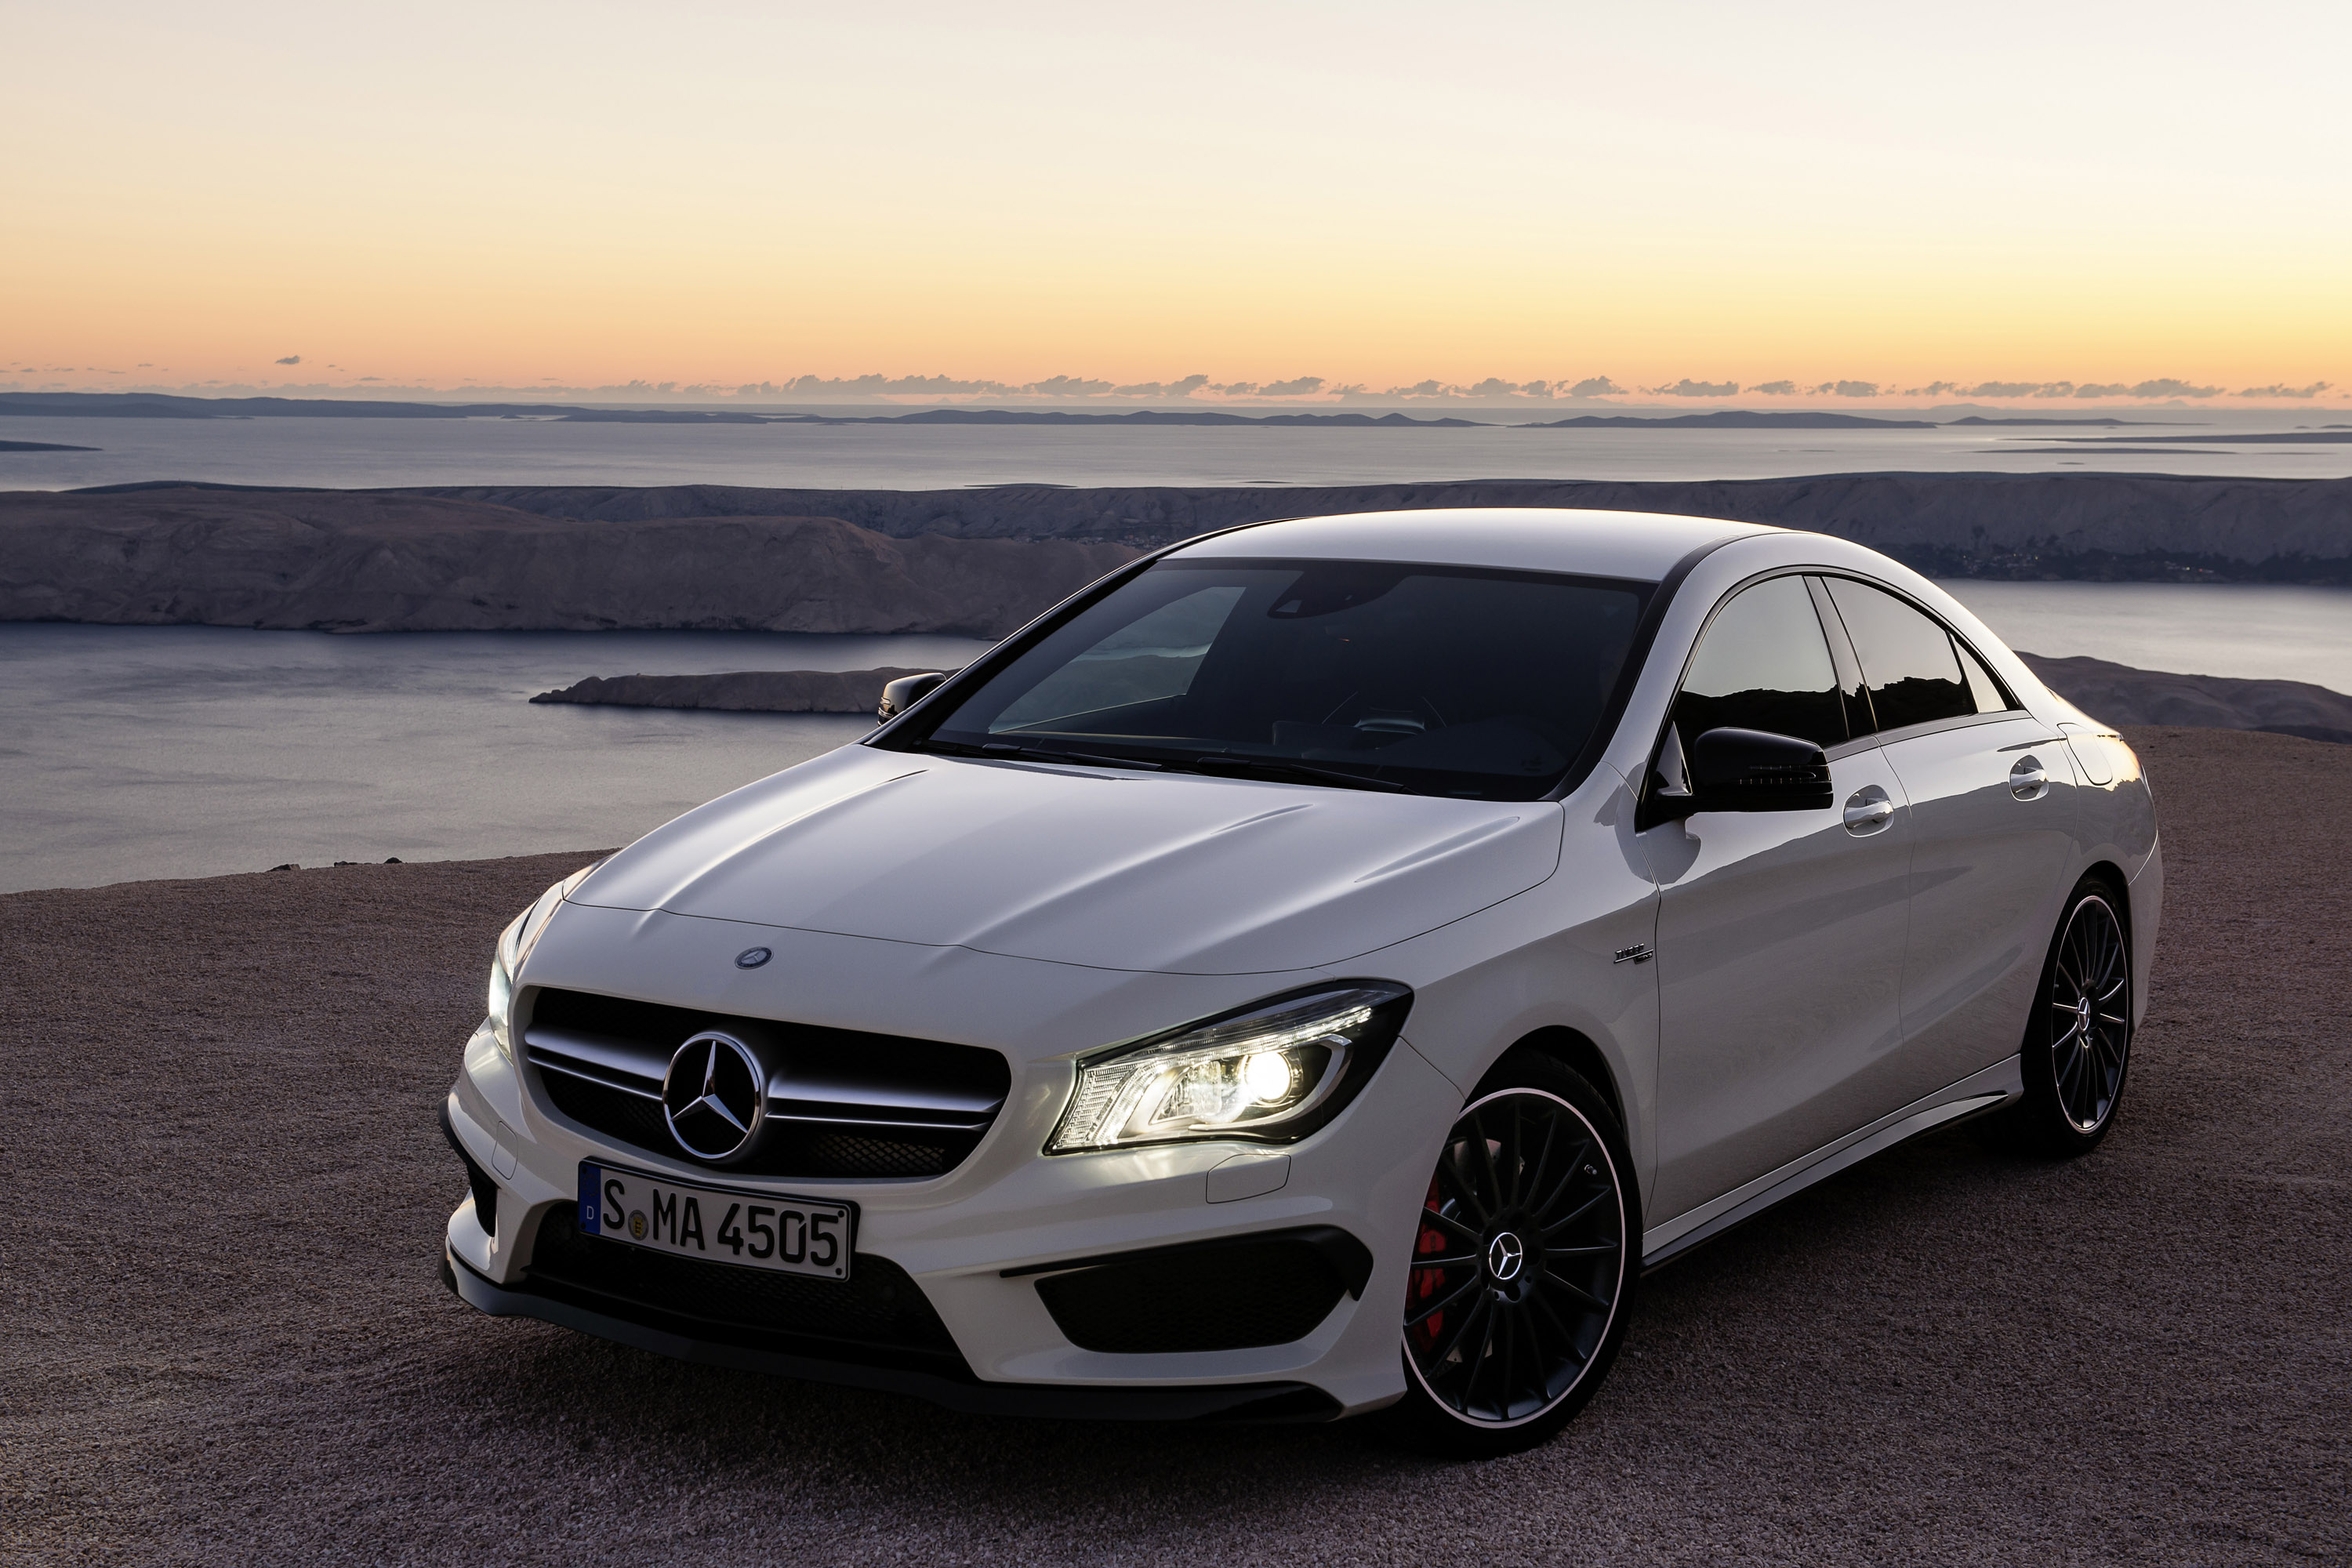 2014 mercedes benz cla 45 amg us 47 450 for 2014 mercedes benz cla 250 review